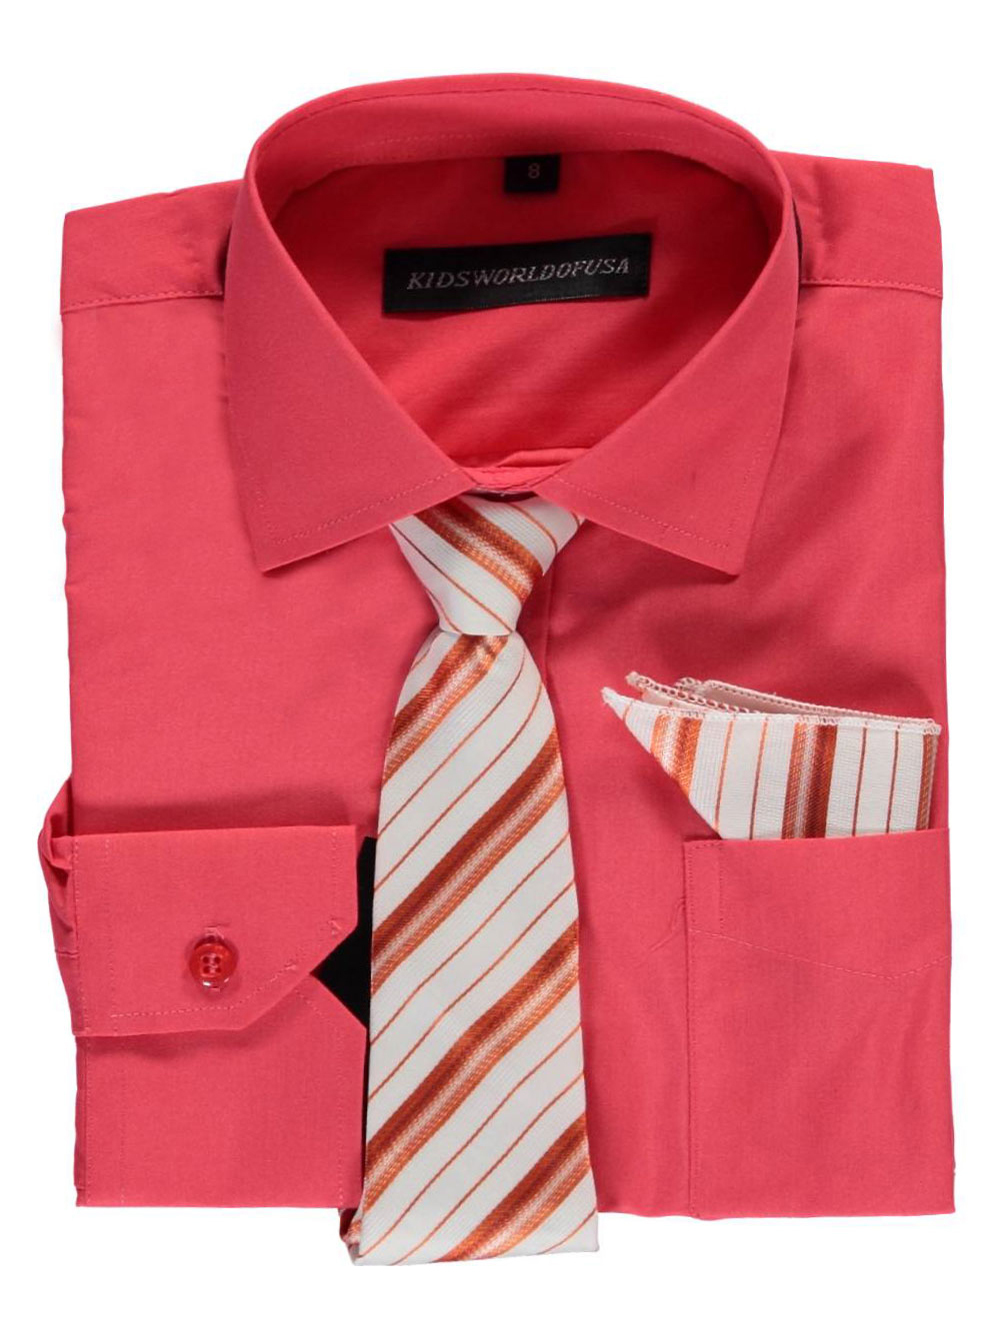 Kids World Big Boys' Dress Shirt with Accessories (Sizes 8 - 20) - coral, 14